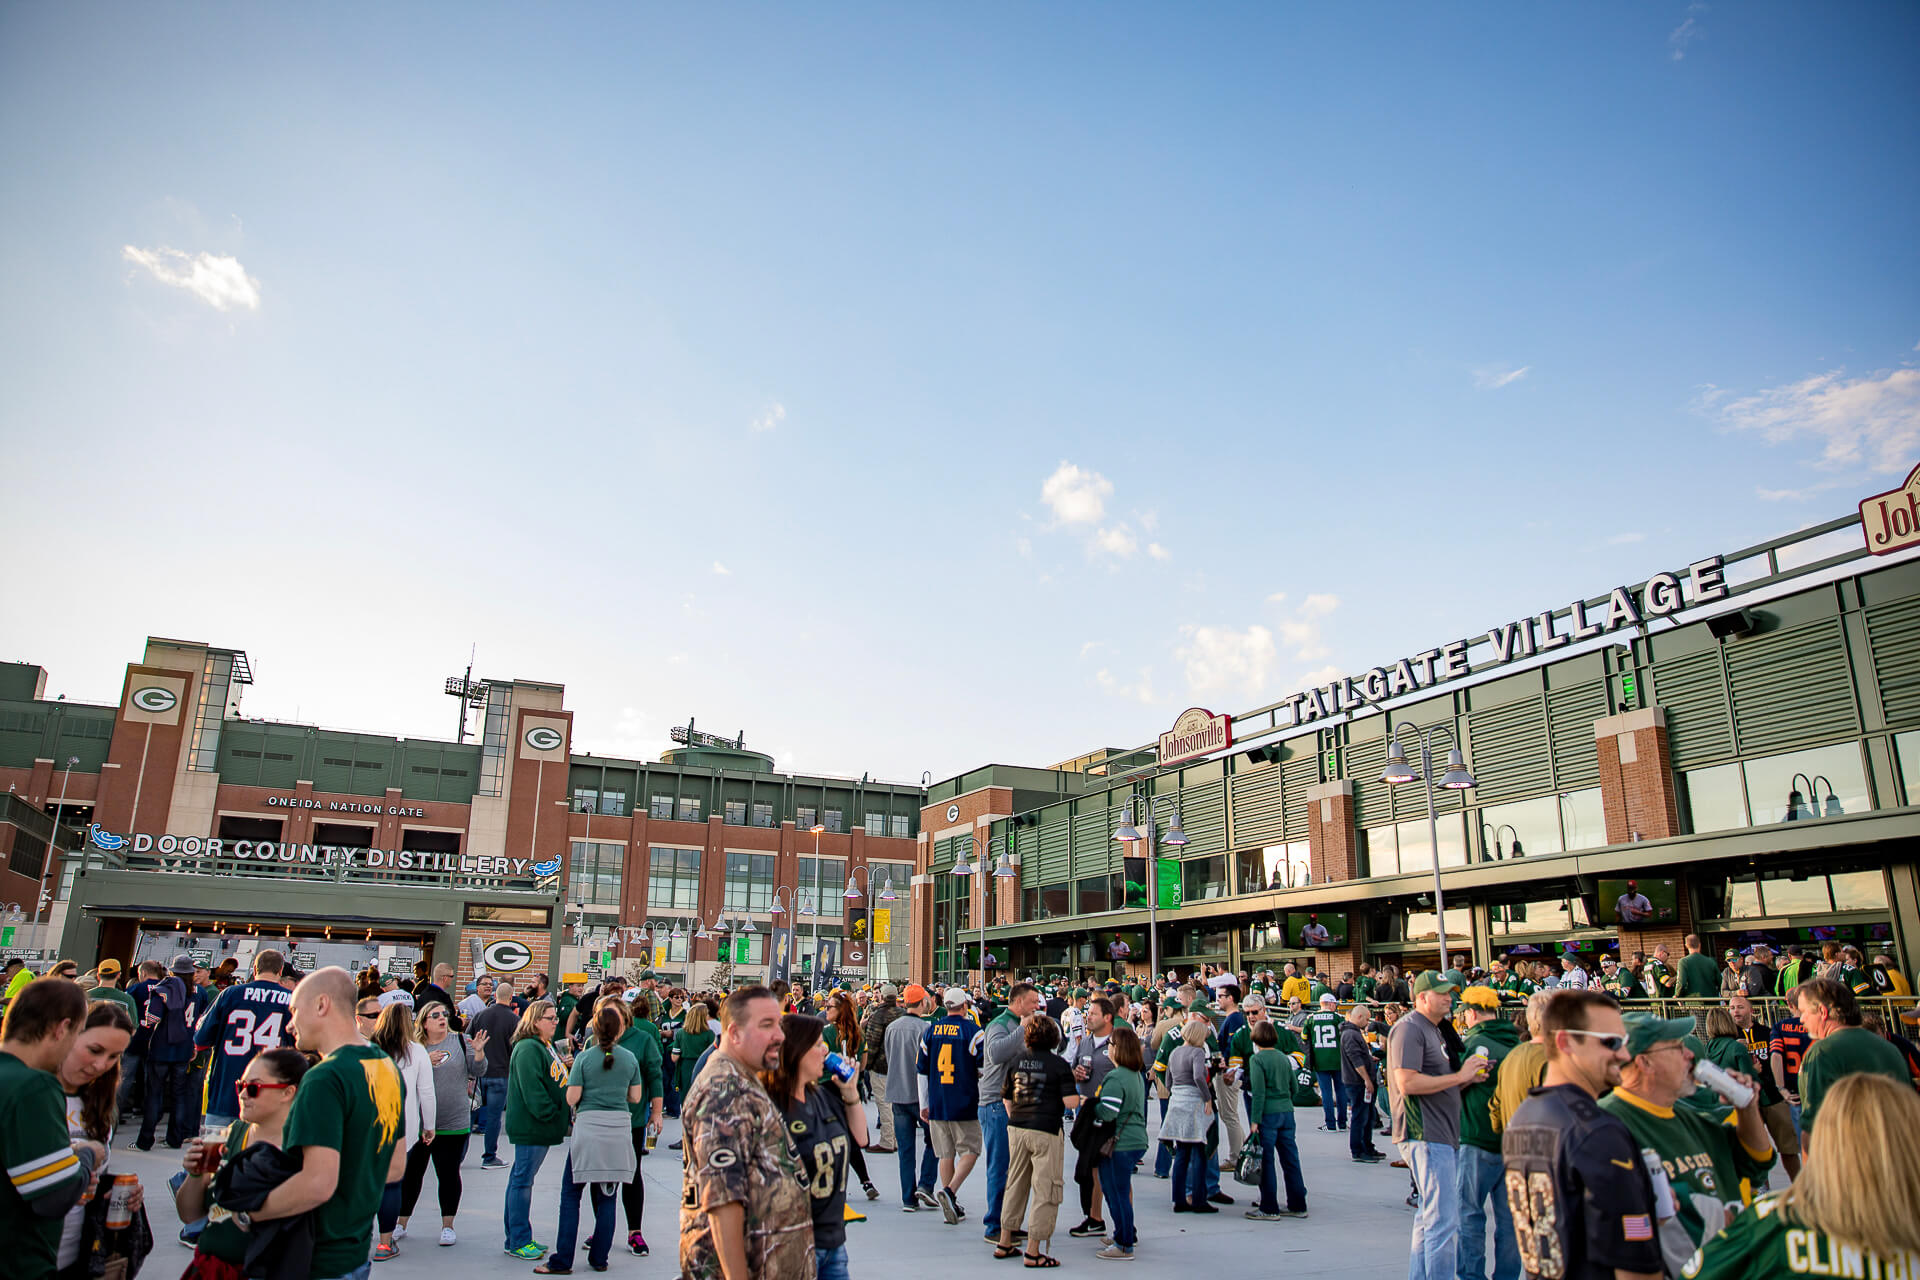 Green Bay Packers Tailgate Village in Titletown District